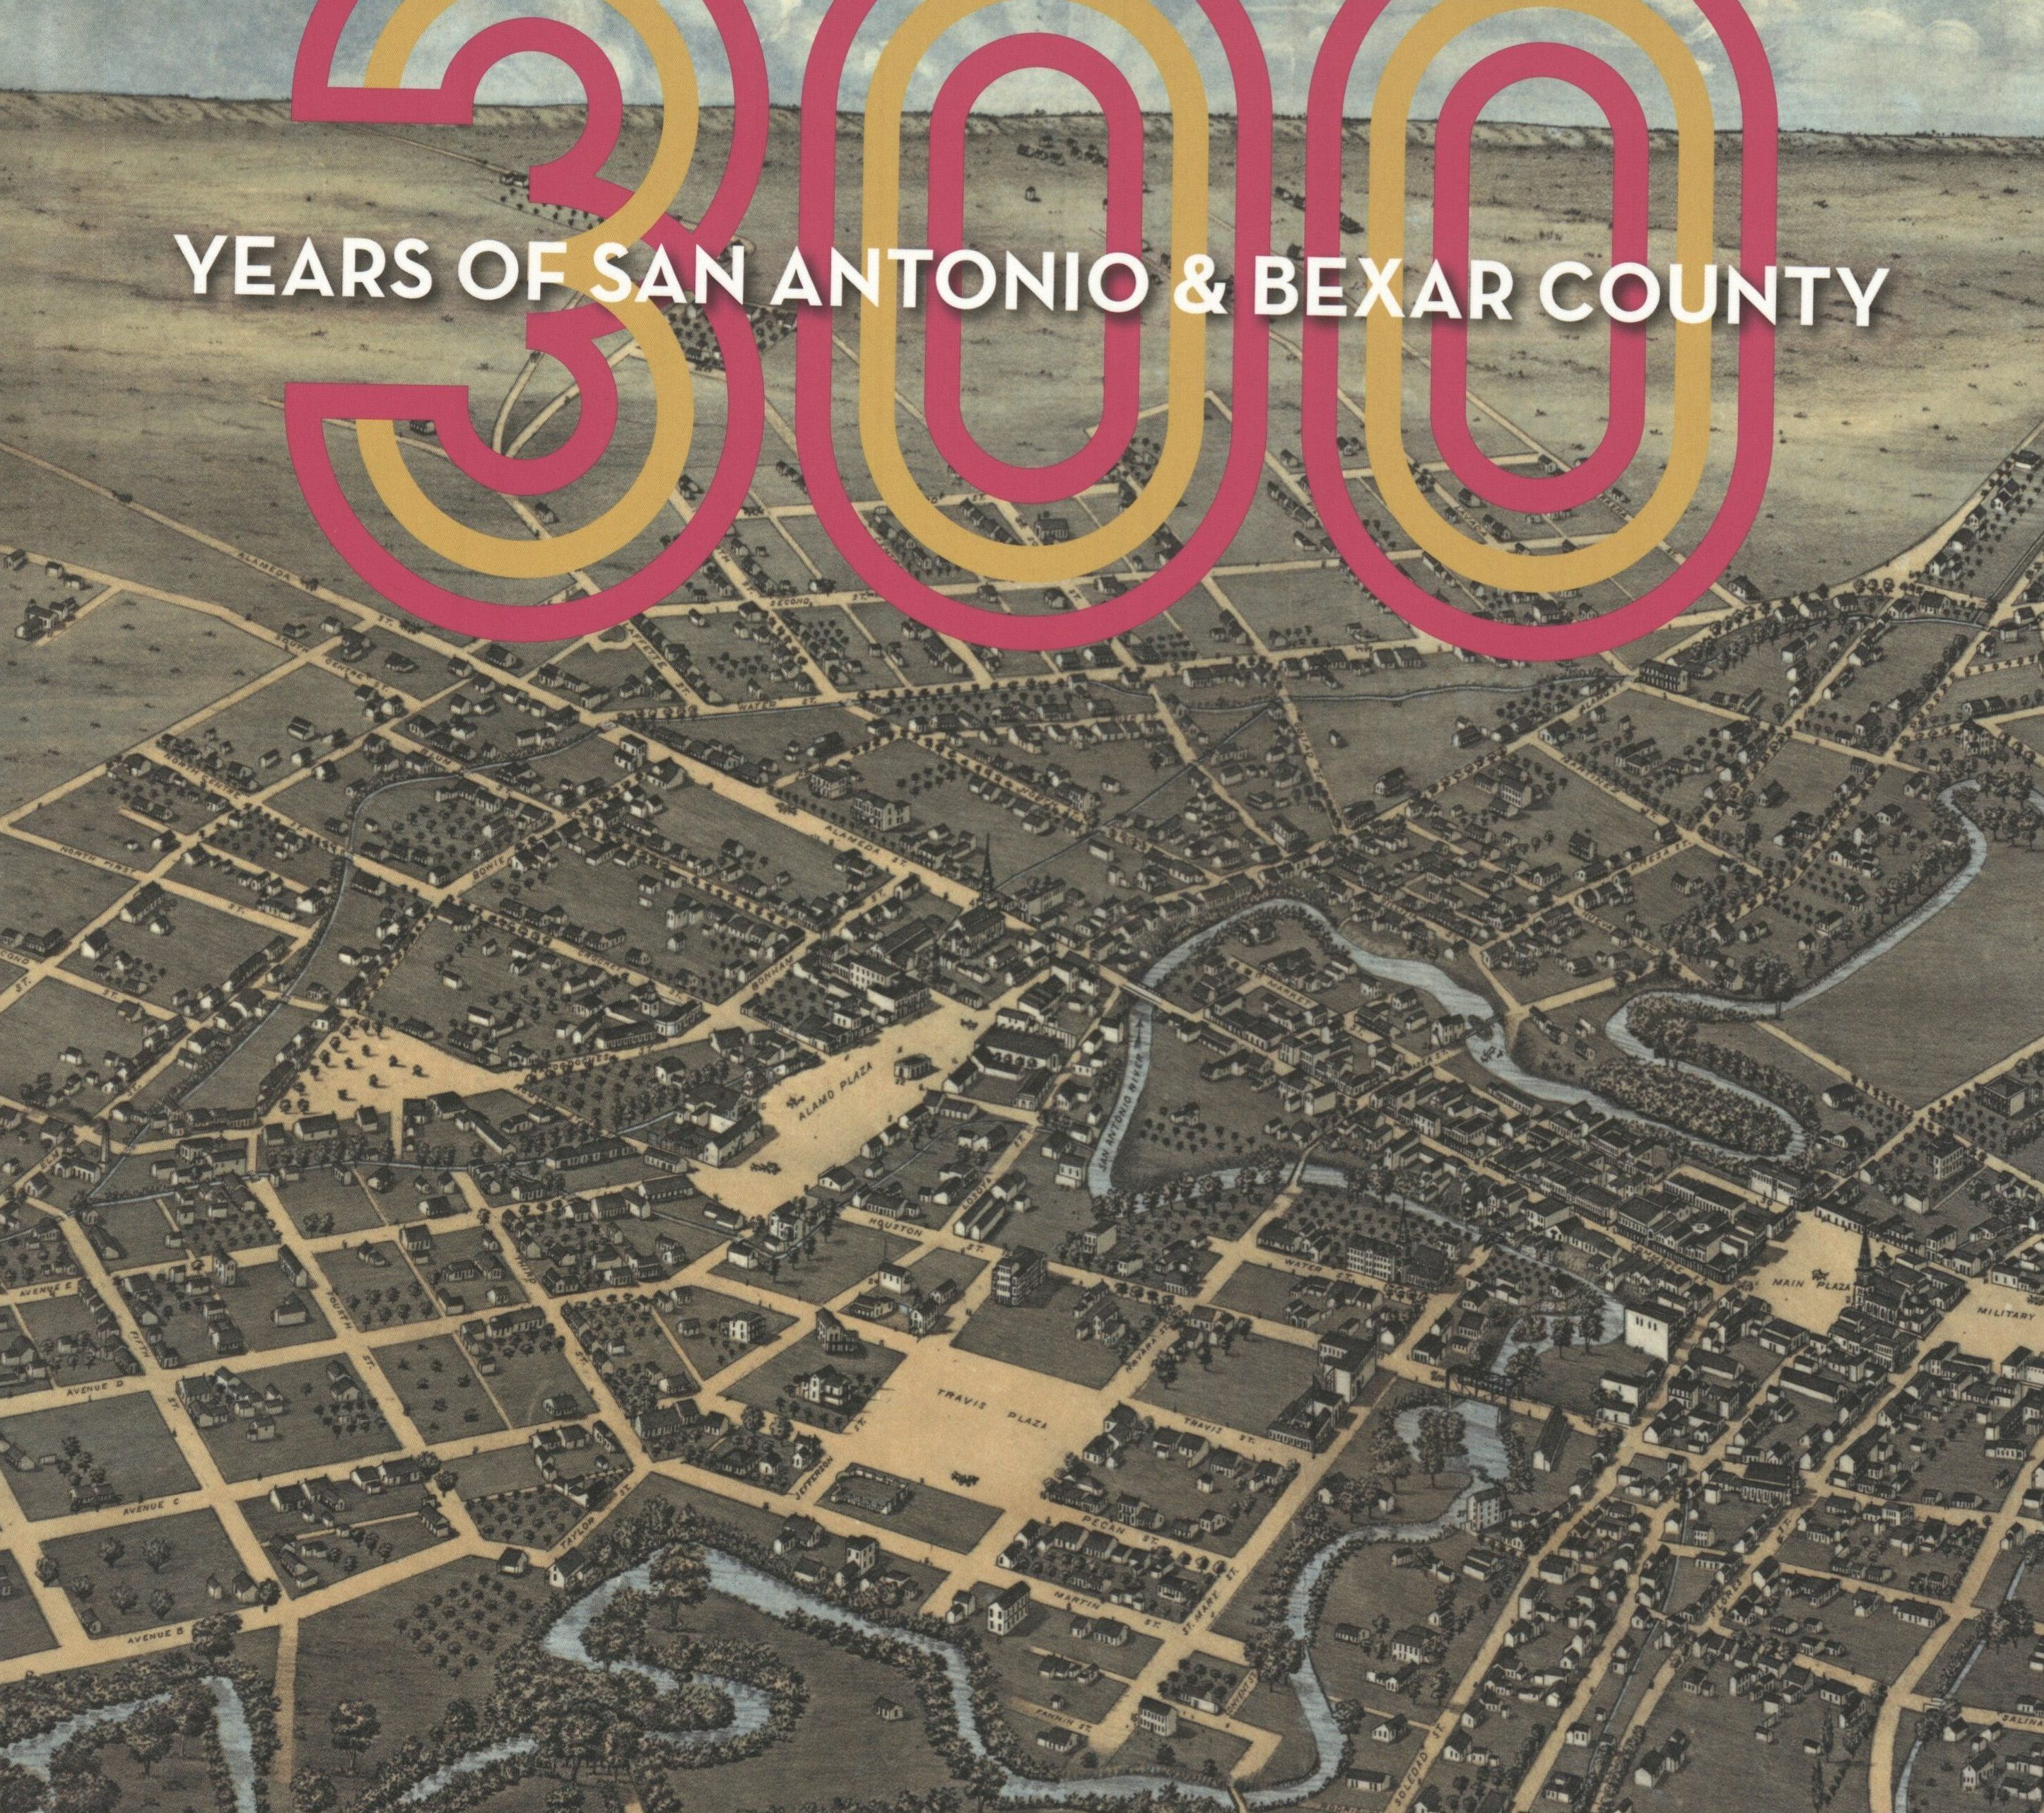 Guerra, Claudia, R., ed. 300 Years of San Antonio & Bexar County. San Antonio: Maverick Books, 2019. Print.